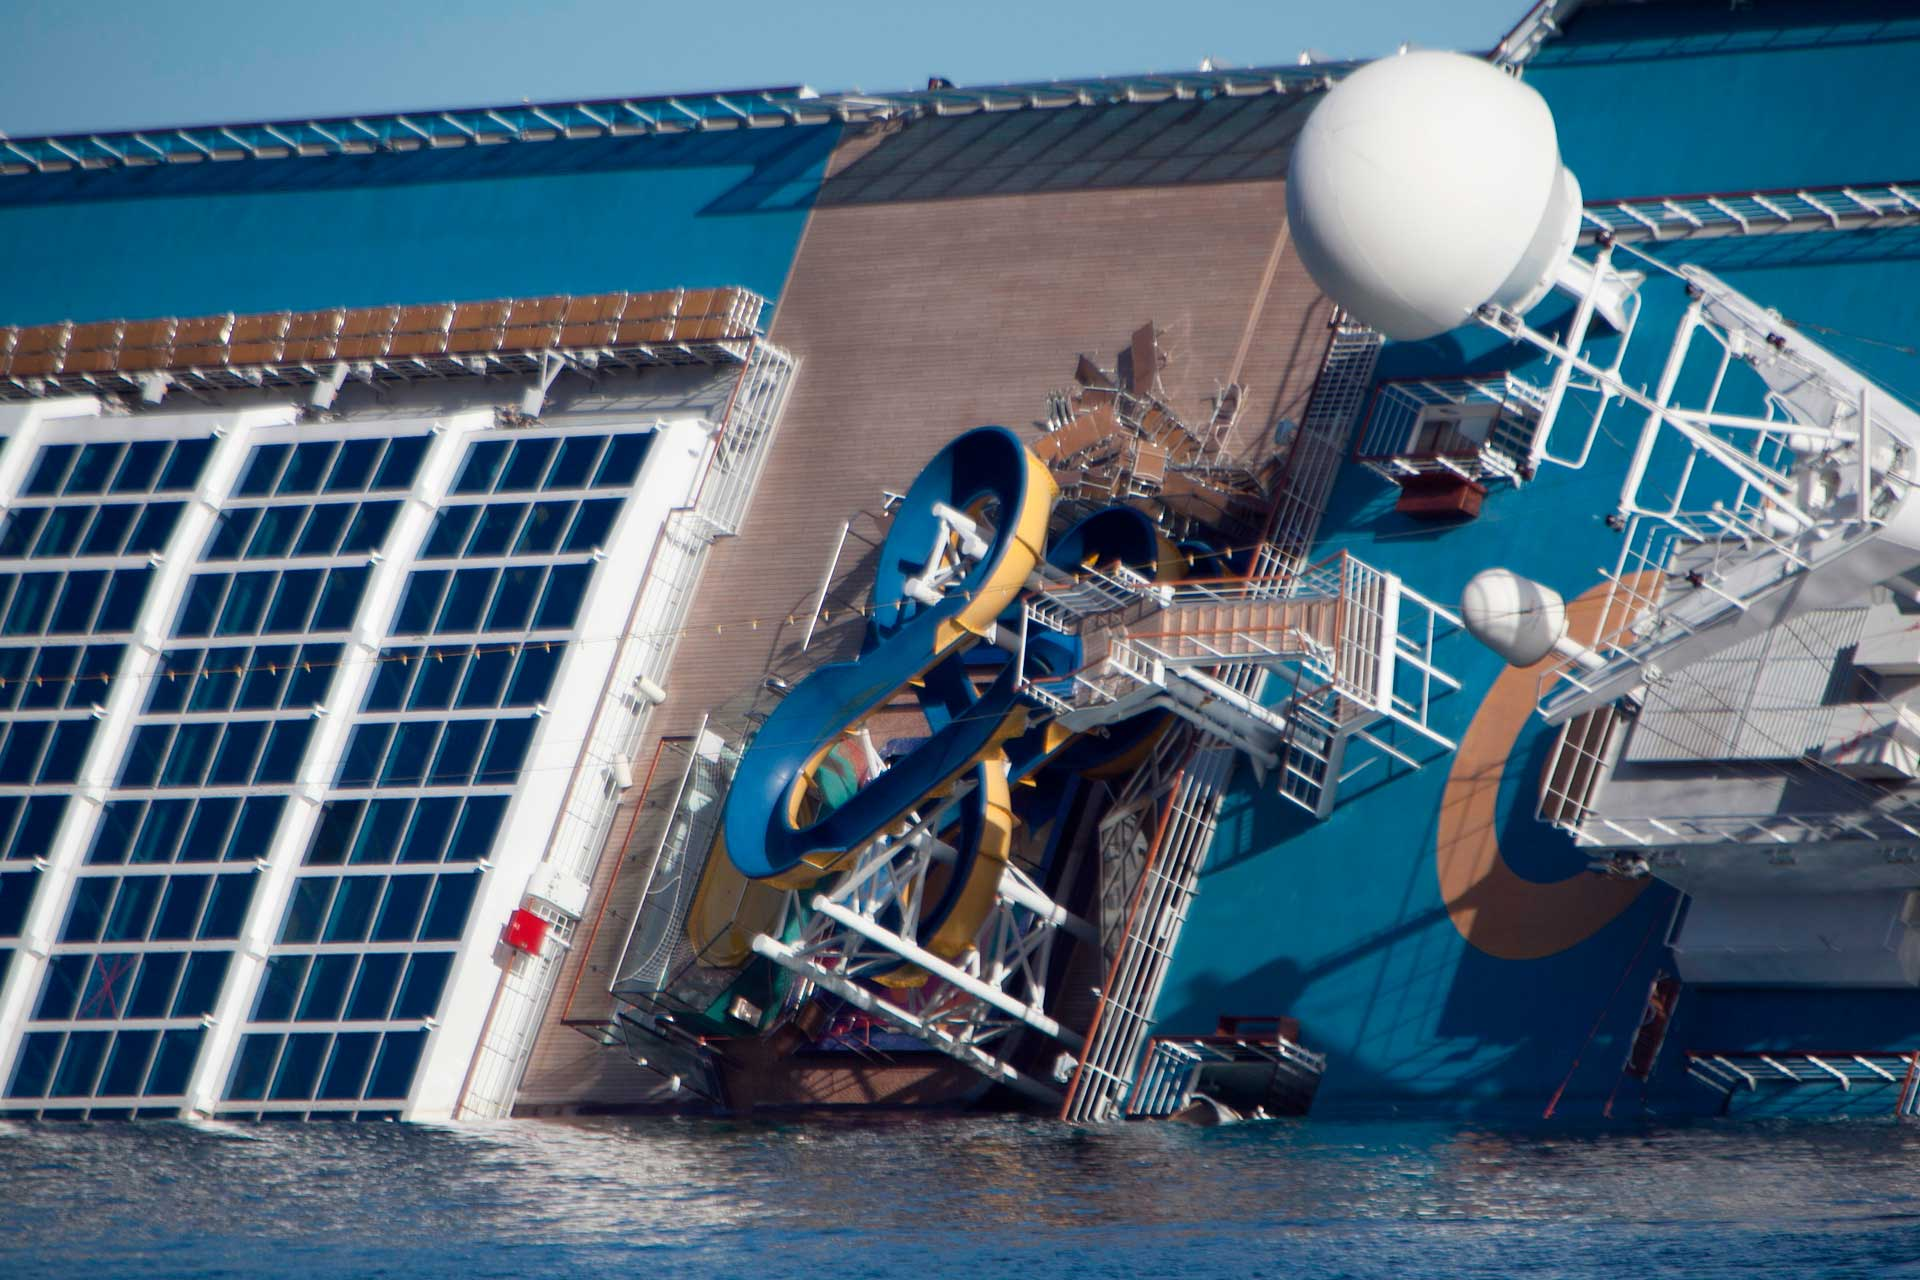 The slides of the water park on the upper deck ended up directly in the sea and the armchairs were piled up against a bulkhead.